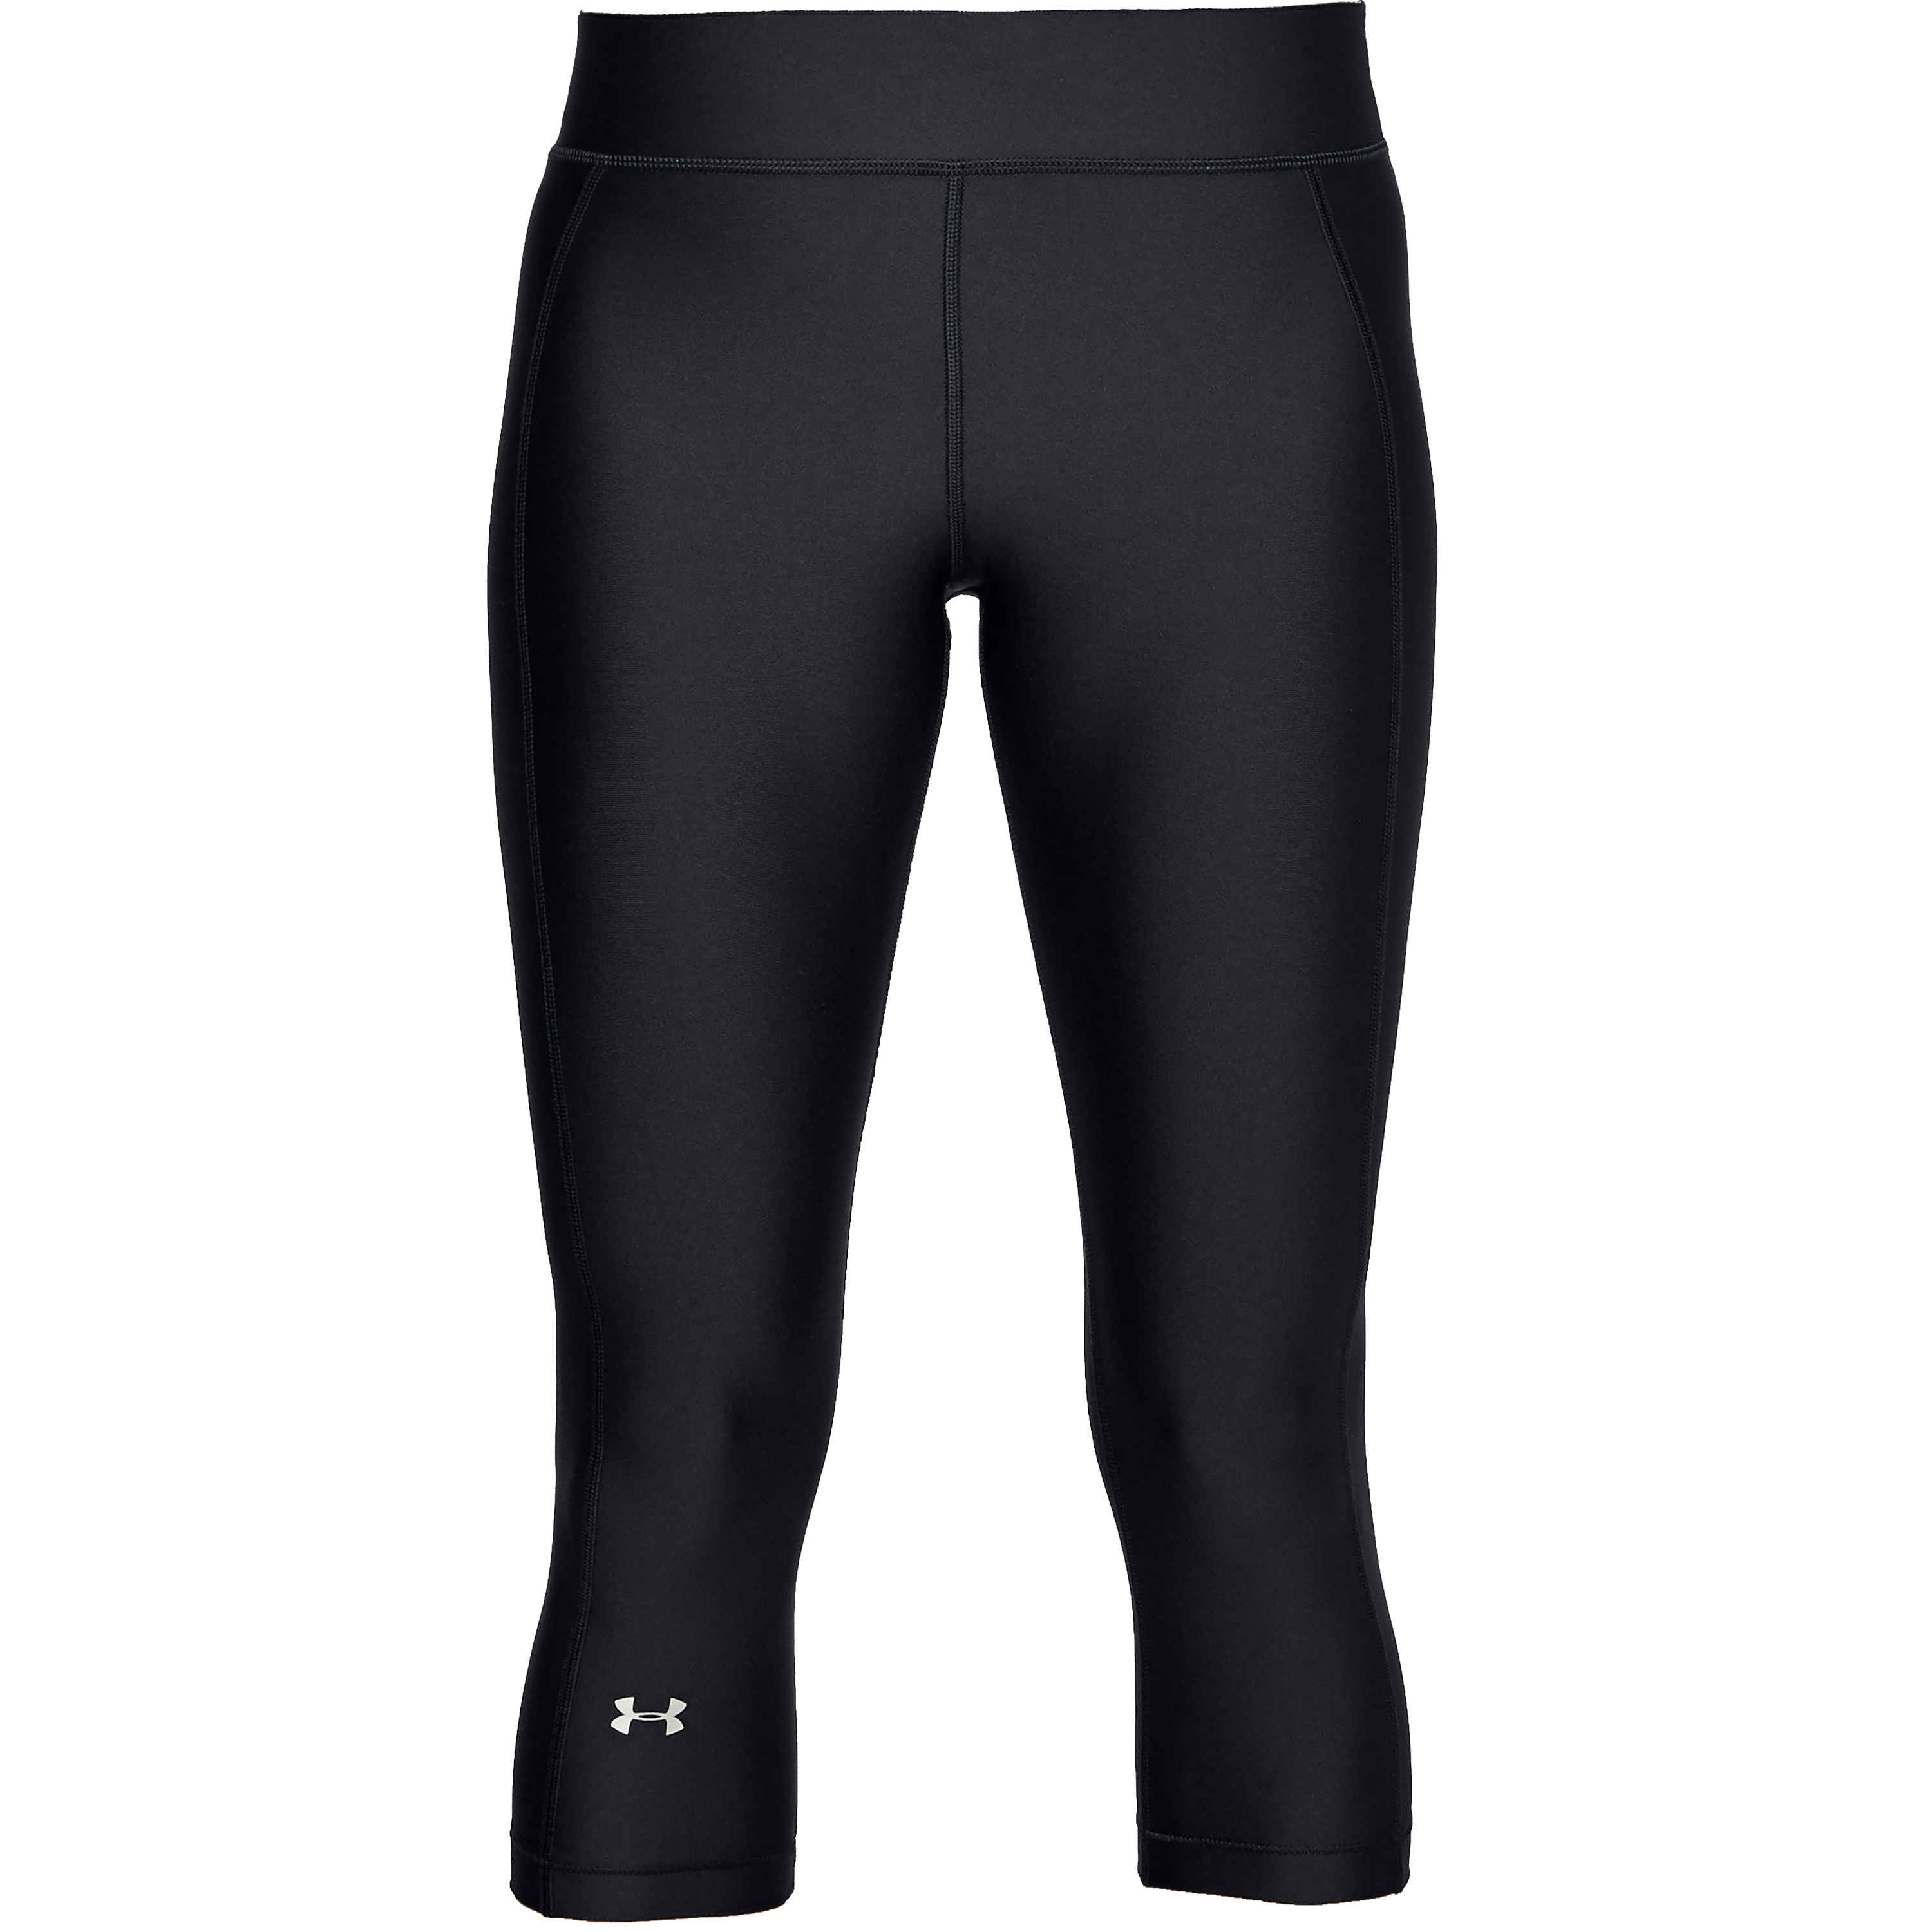 Under Armour Women Caprihose HG Armour schwarz